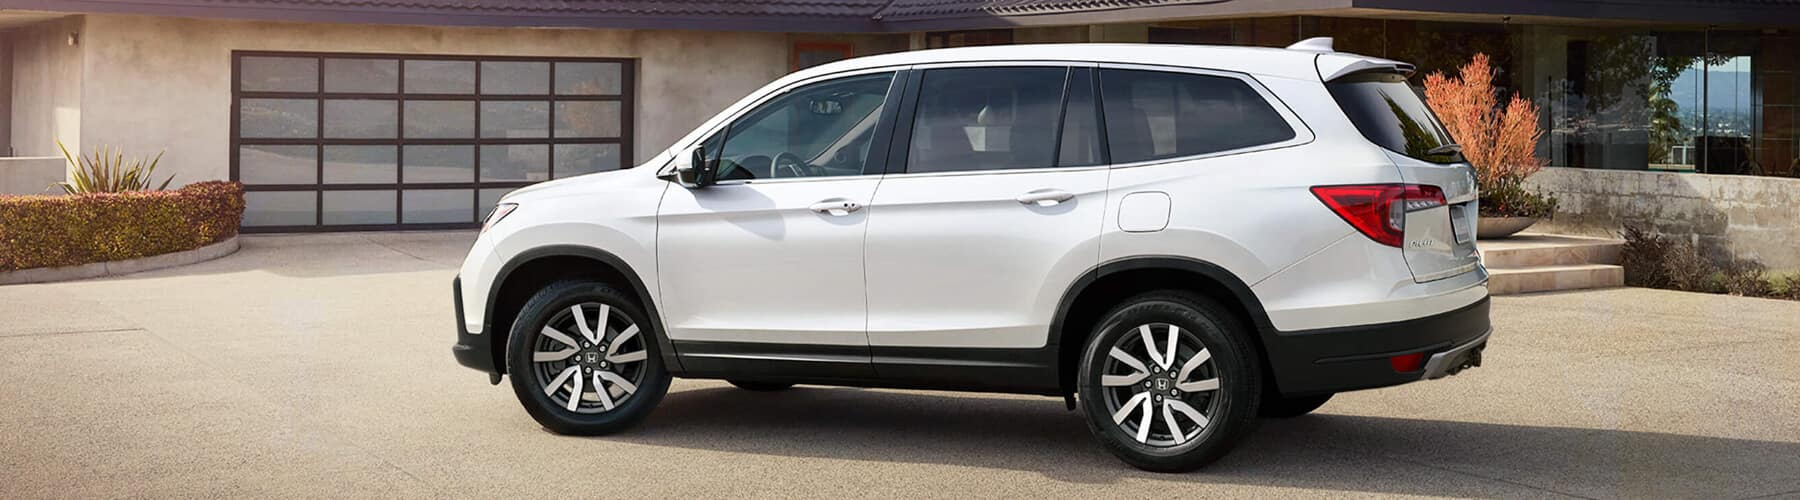 2019 Honda Pilot Modern Family Suv In Michigan West Towing Wiring Harness Slider